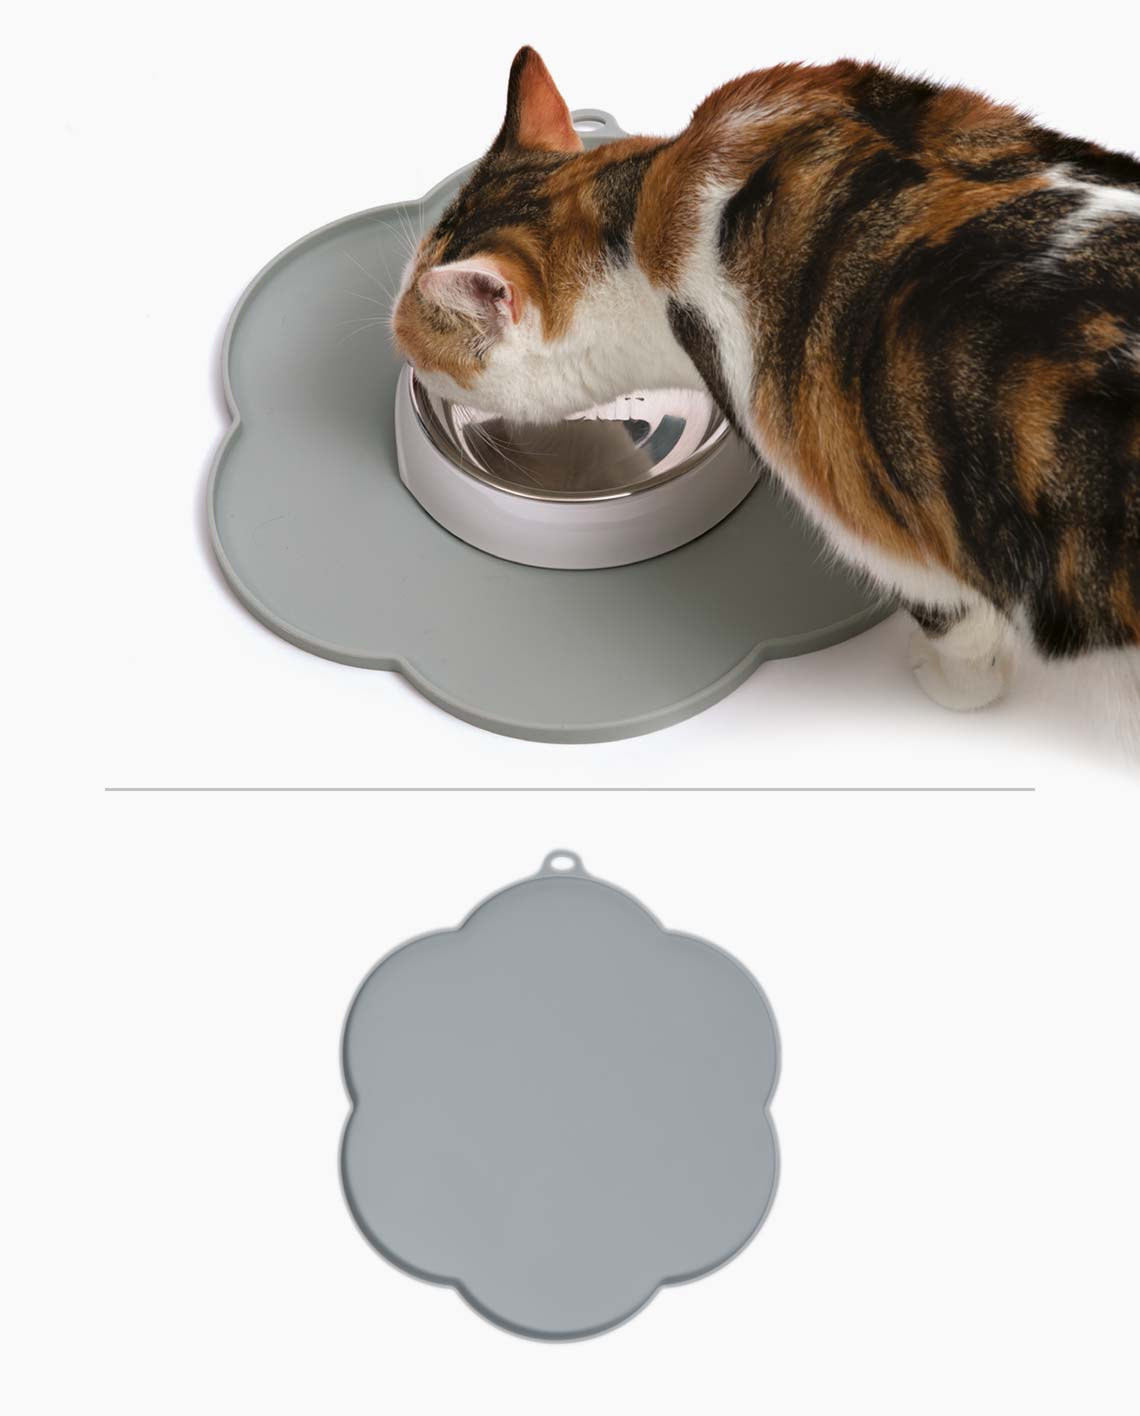 Pixi eating from a dish on a flower placemat